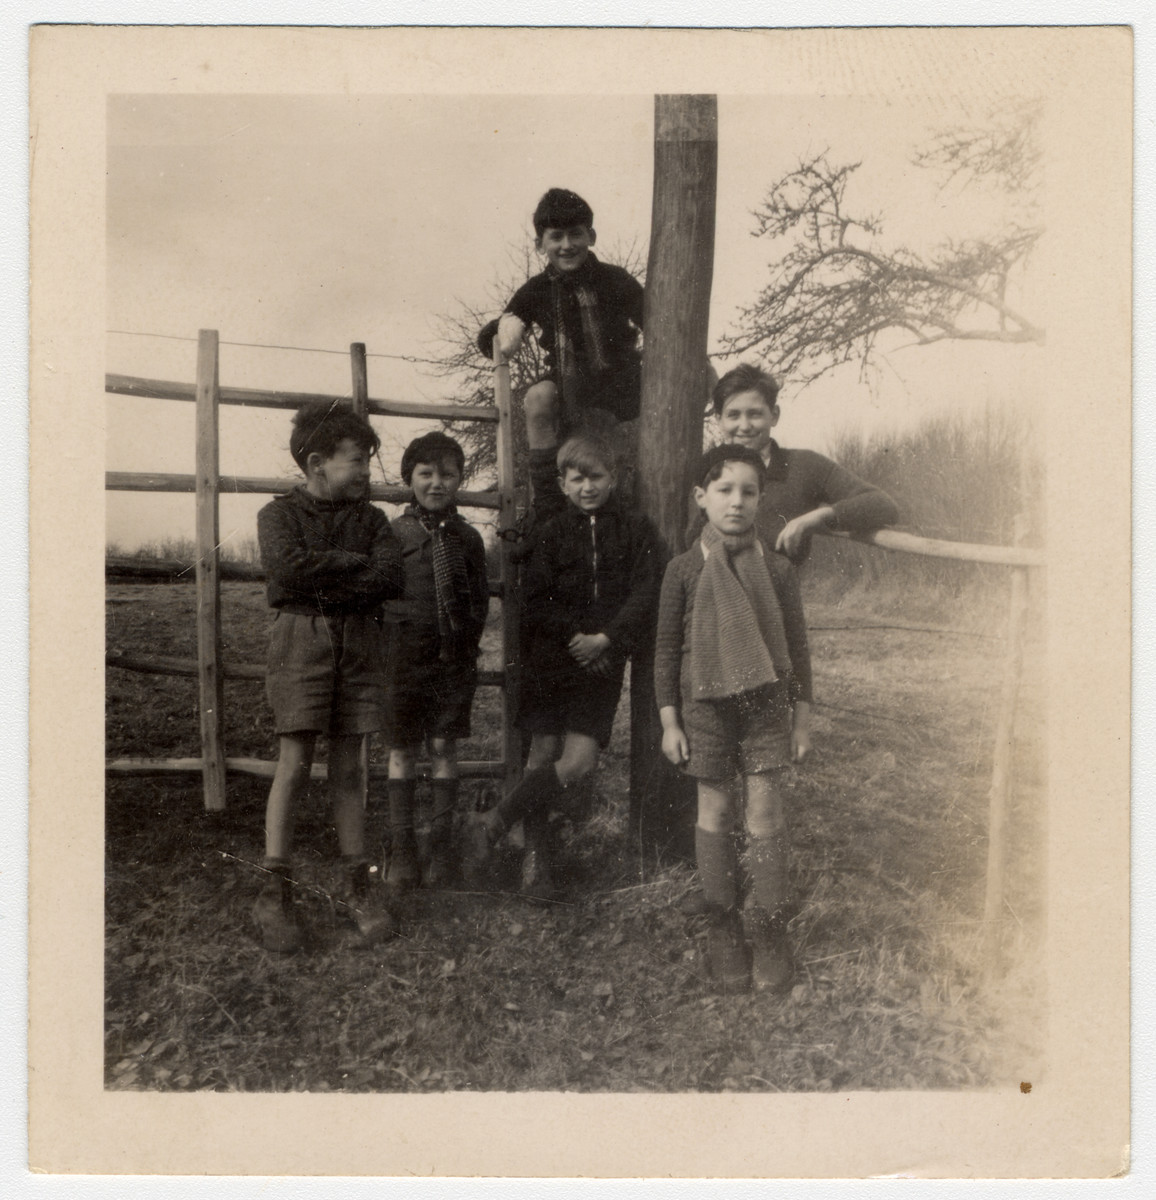 Jewish children evacuated from Paris by the Quakers to escape the bombing pose outside of a Quaker boarding  home, Moulin de la Ferriere, in Noce, Normandy in 1940. Steven Simon is in front on the right.